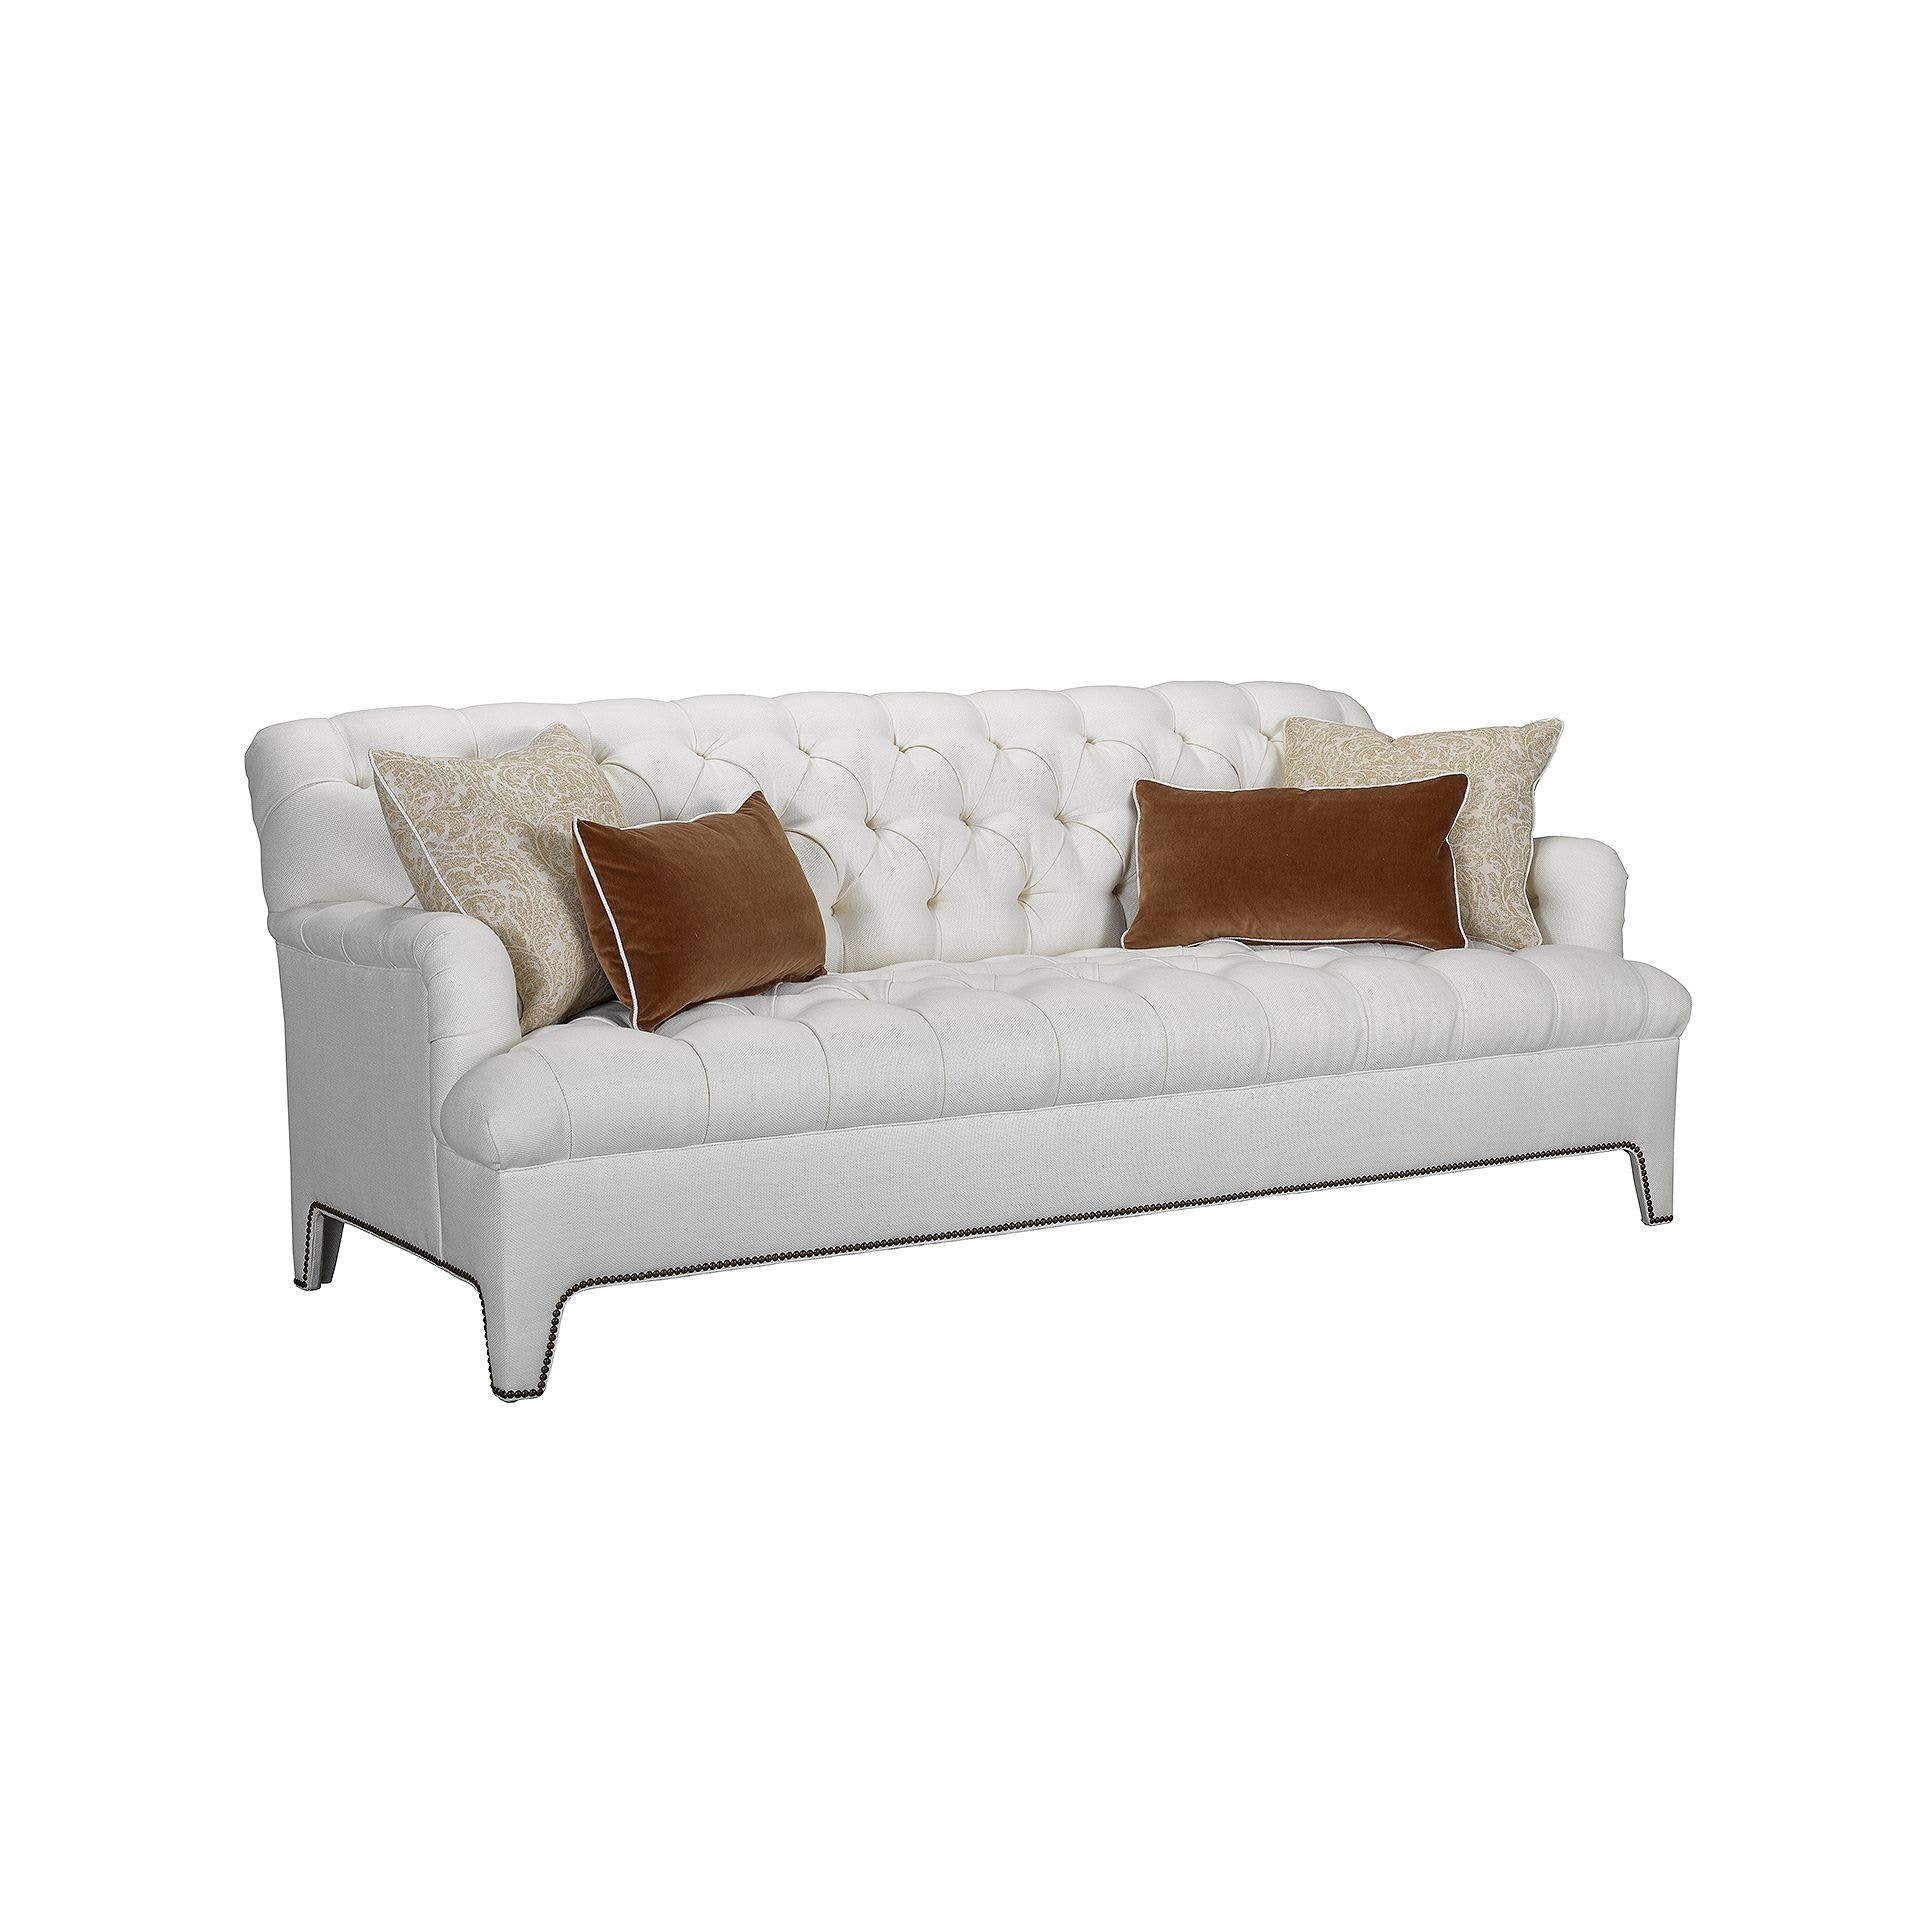 Henredon Furniture Mark D. Sikes Beverly Tufted Sofa H1655 C